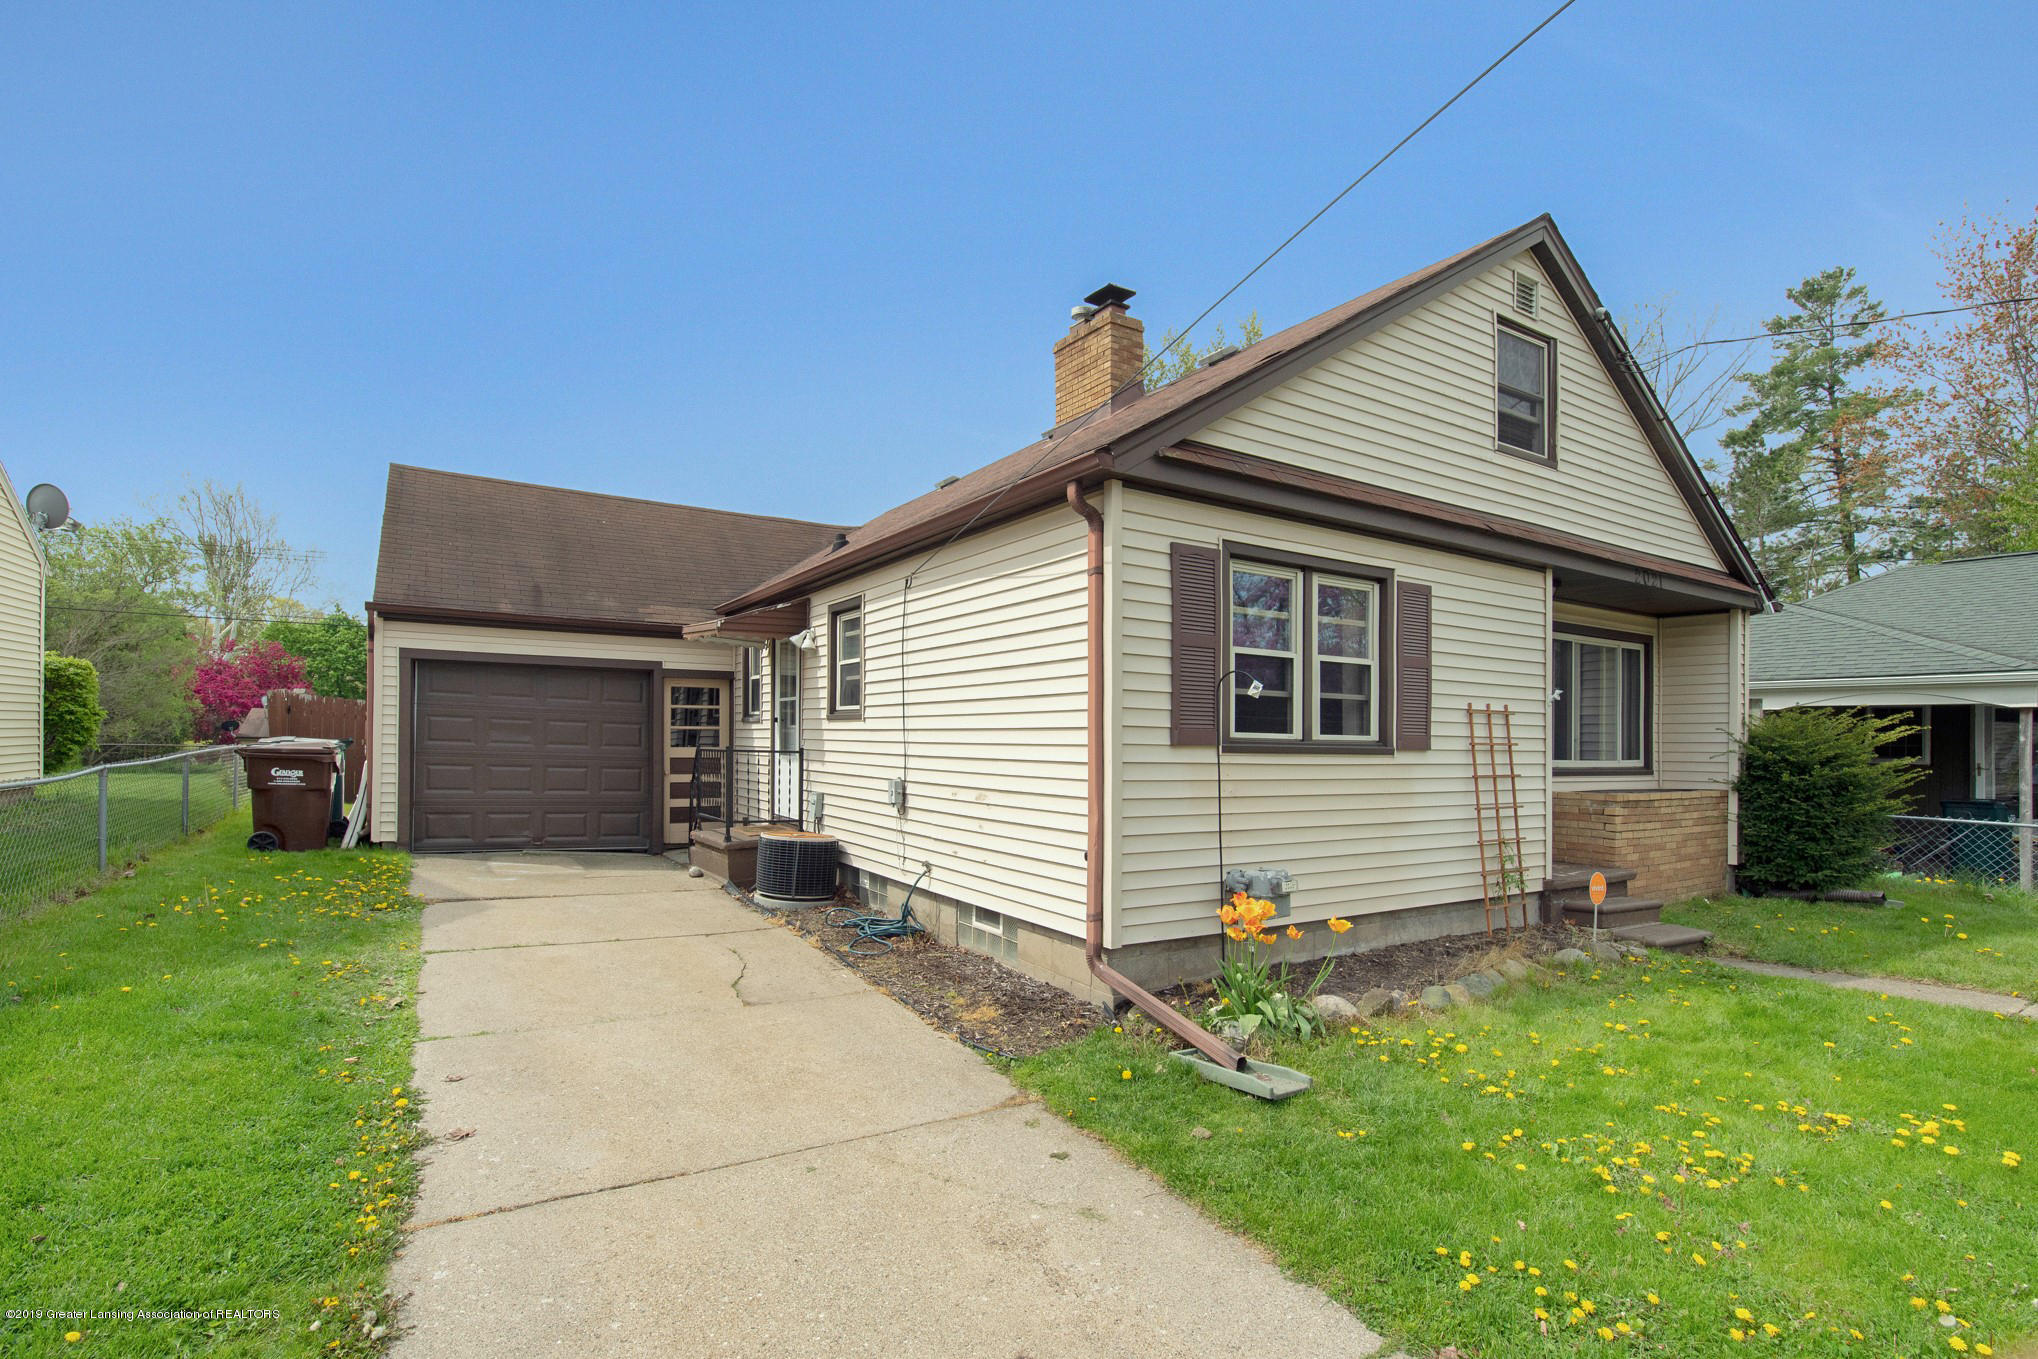 2021 Victor Ave - 27 - 27